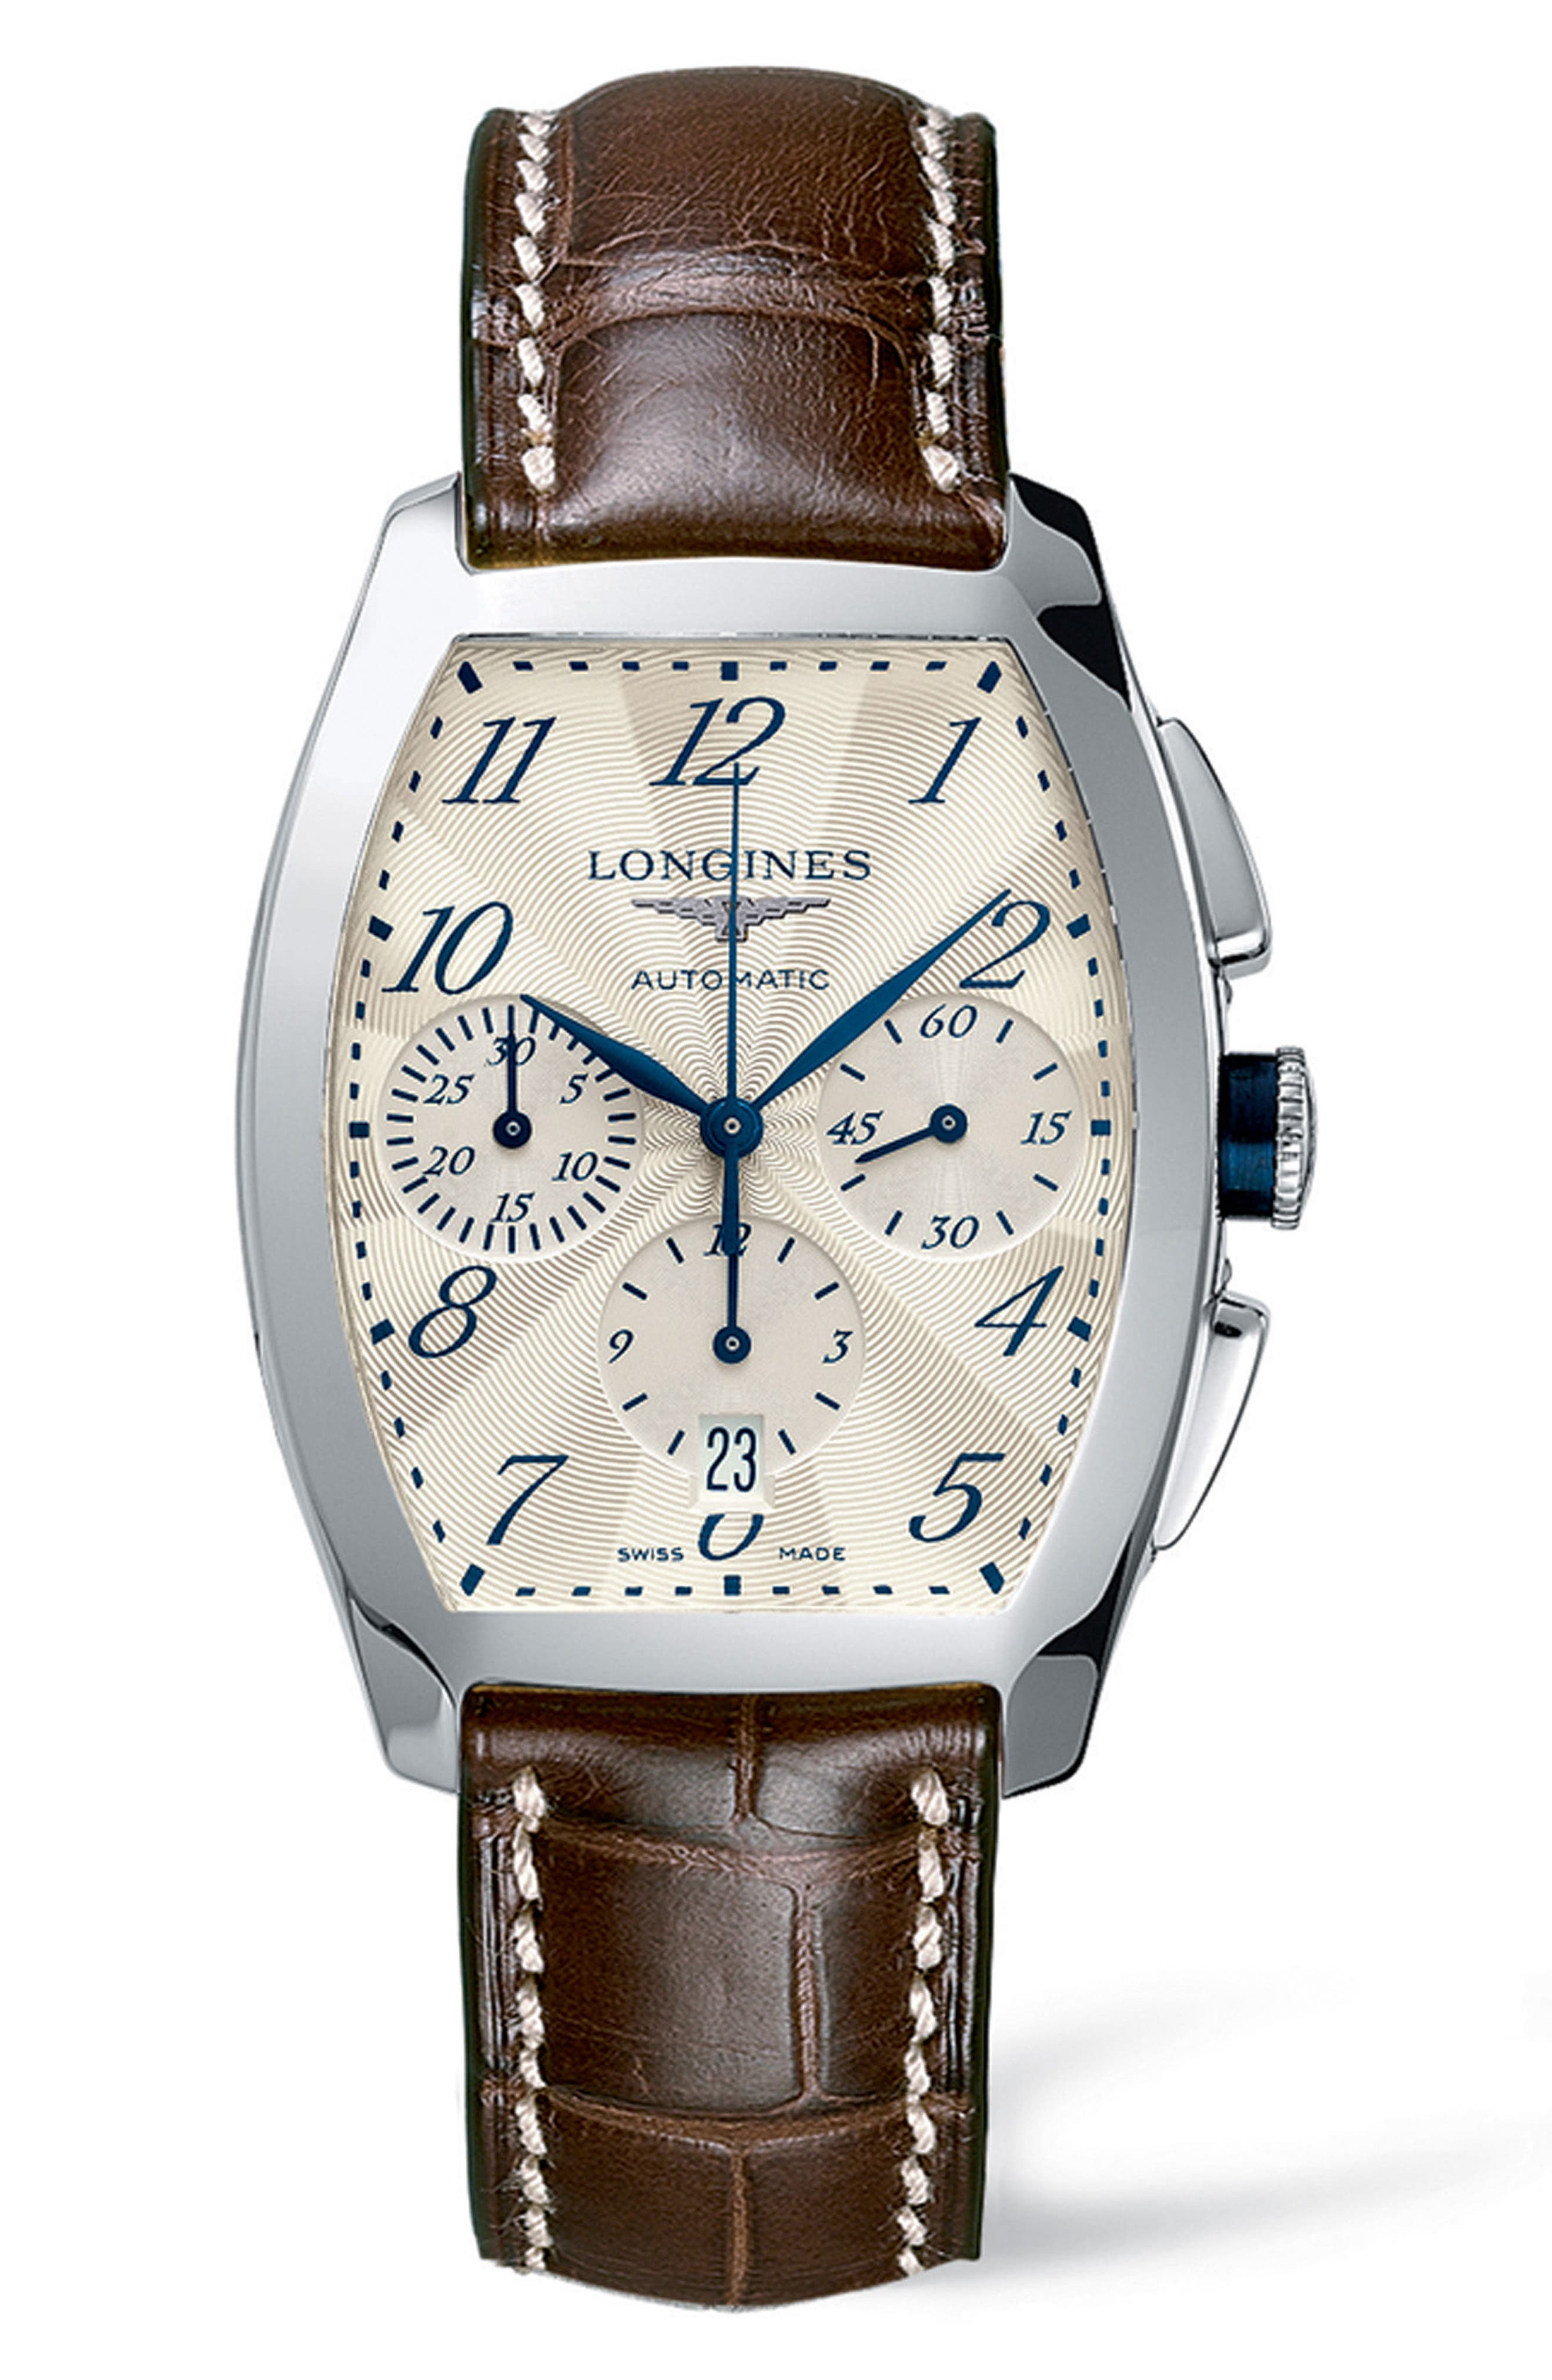 Longines Evidenza Automatic Chronograph Leather Strap Watch, 34.9mm x 40mm